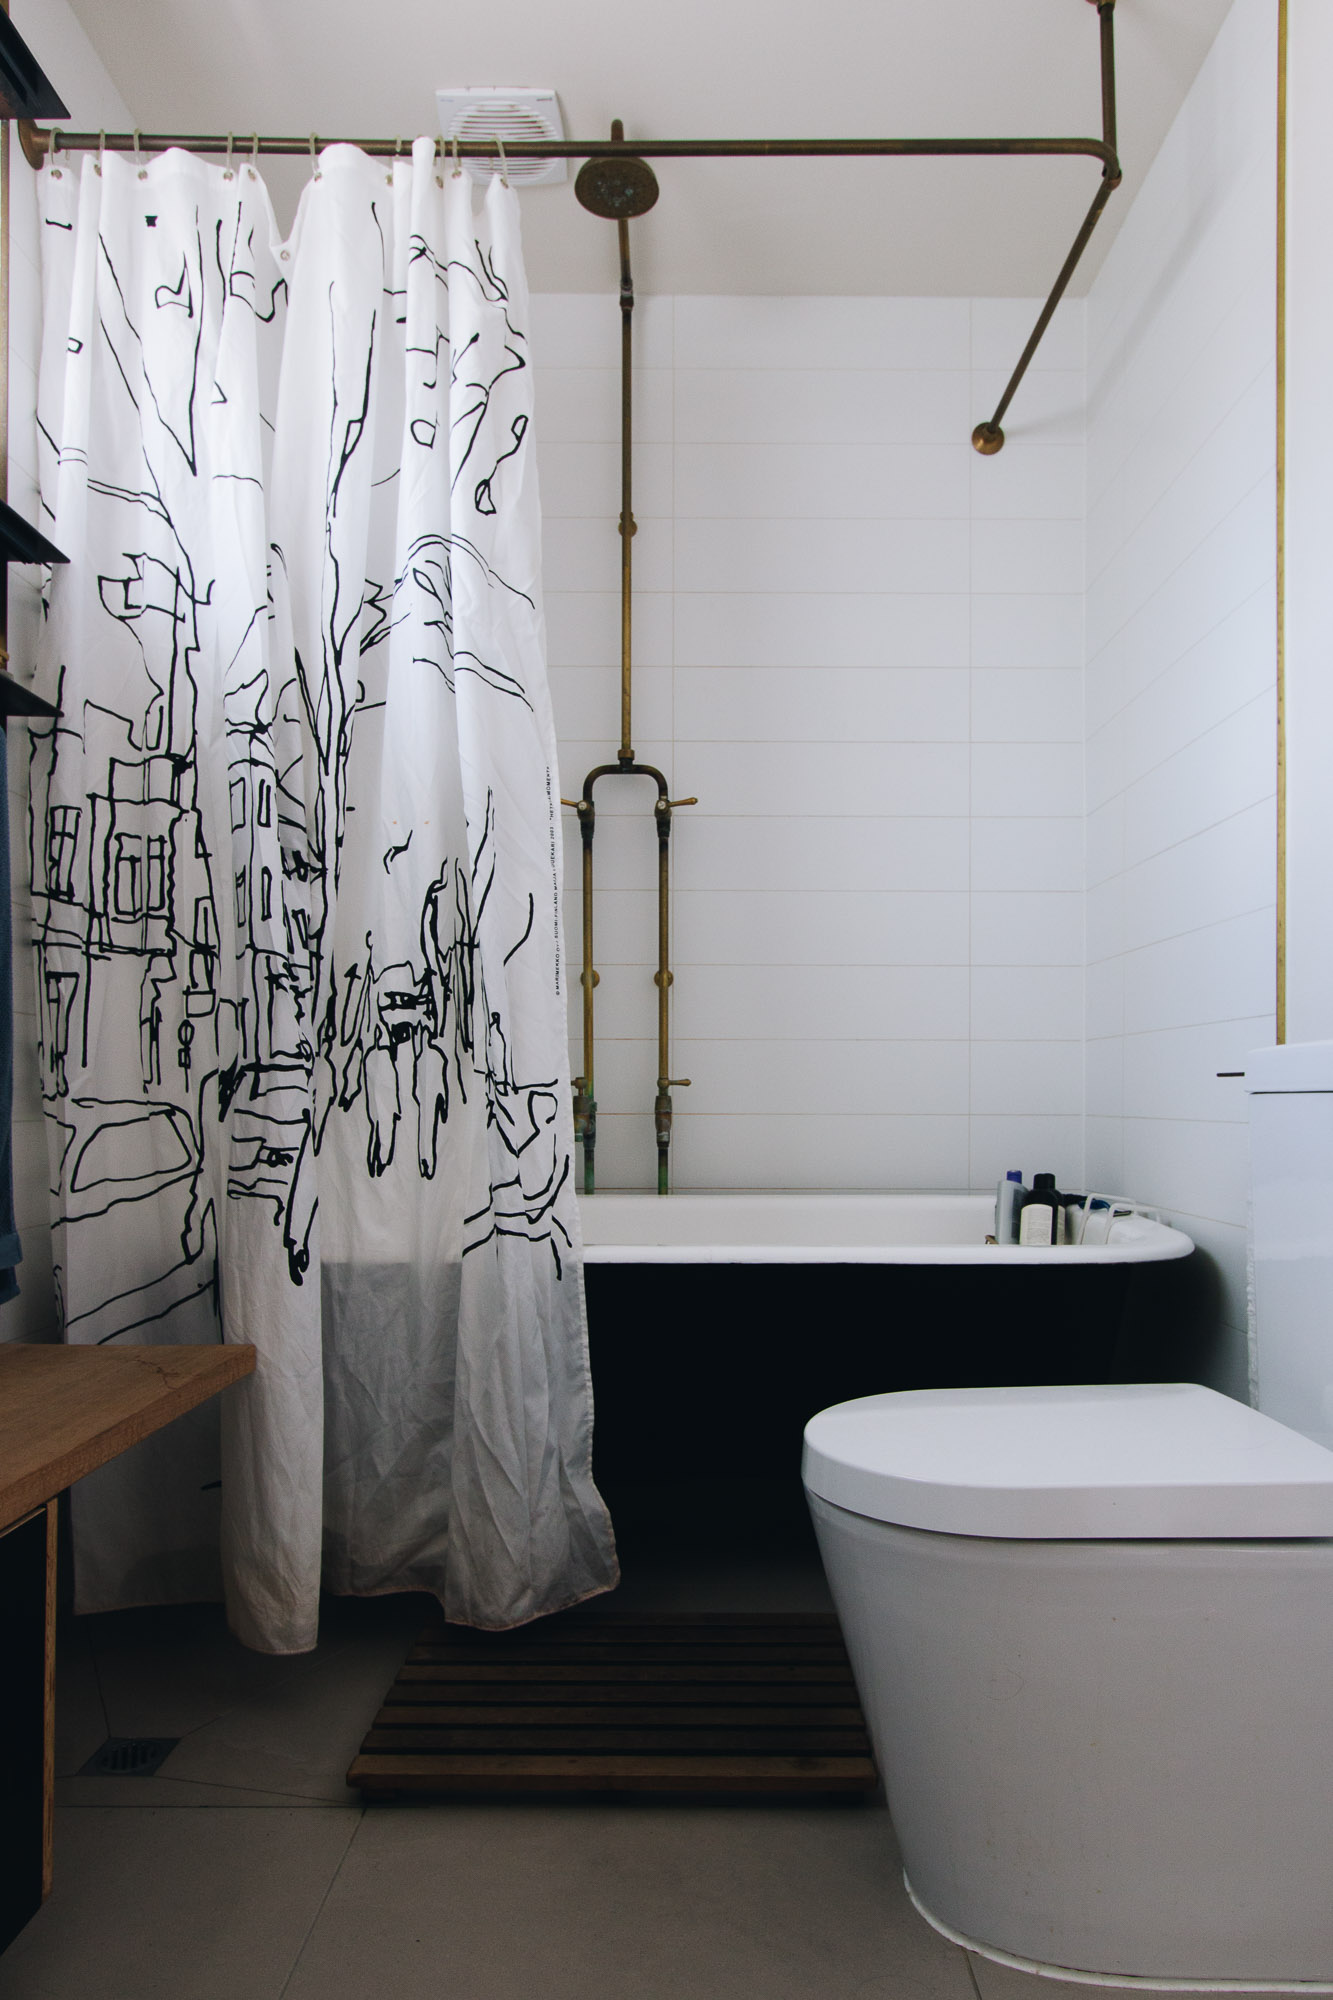 The bathroom reflects other spaces in the house where old meets new and recycled meets sustainable technology. The bath was bought second hand and painted by Joan before we installed it. The brass tap ware reflects all the door furniture and taps throughout the house made of raw brass. Jeremy has used timber and form ply in here too and we have installed a  Marimekko  shower curtain in the black and white colour scheme. The floor is covered by large soft grey Italian tiles from  Signorino  in Richmond. The wall tiles are a simple long white tile used in the bathrooms and kitchen. The toilets are very low water use and are refilled from tank water.